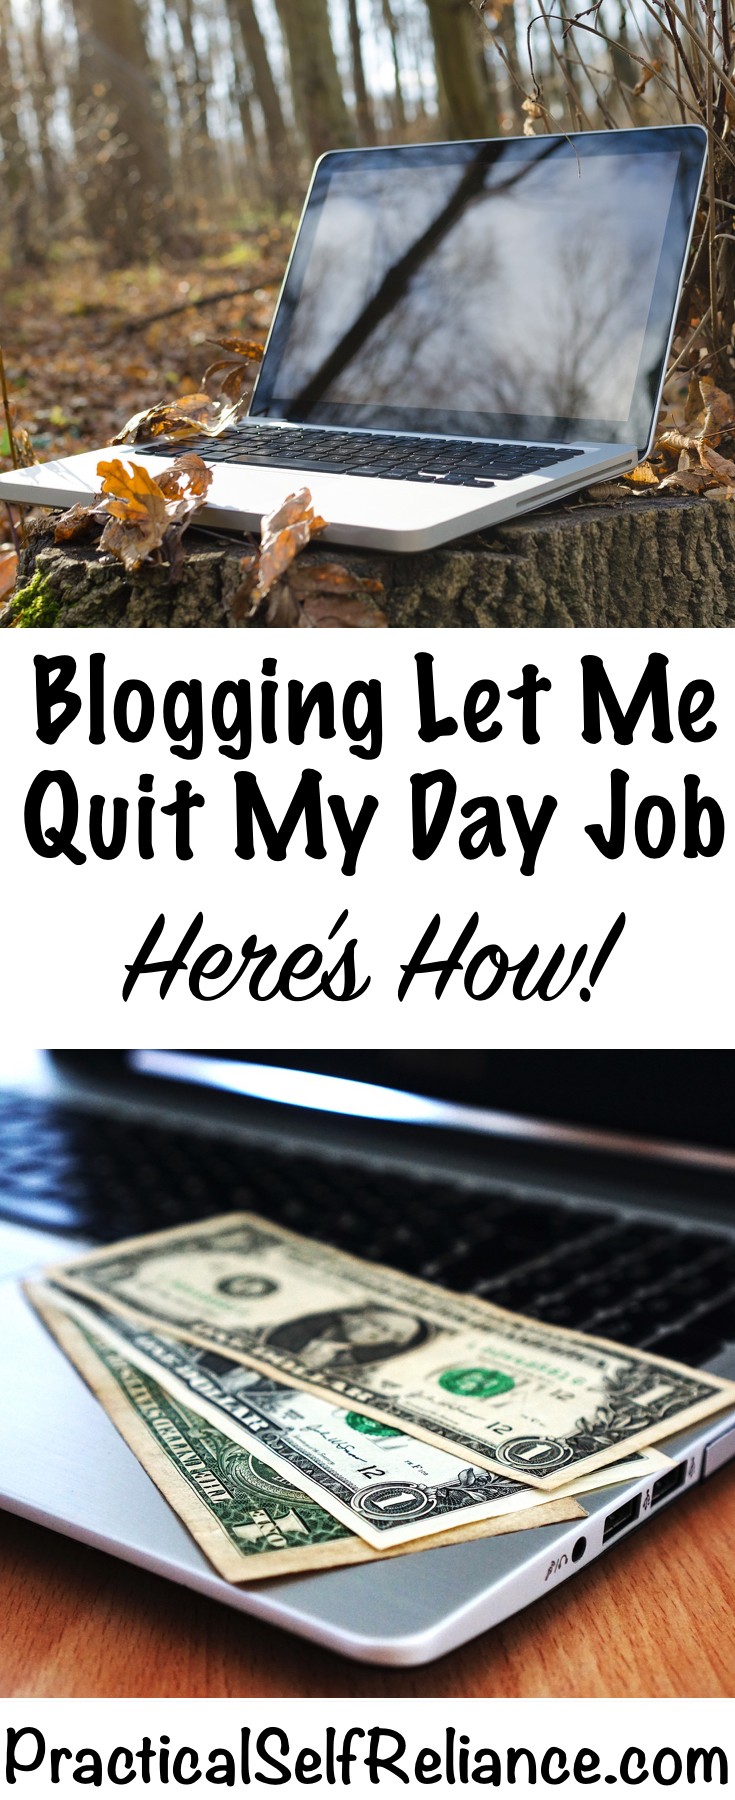 How Blogging Let Me Quit My Day Job